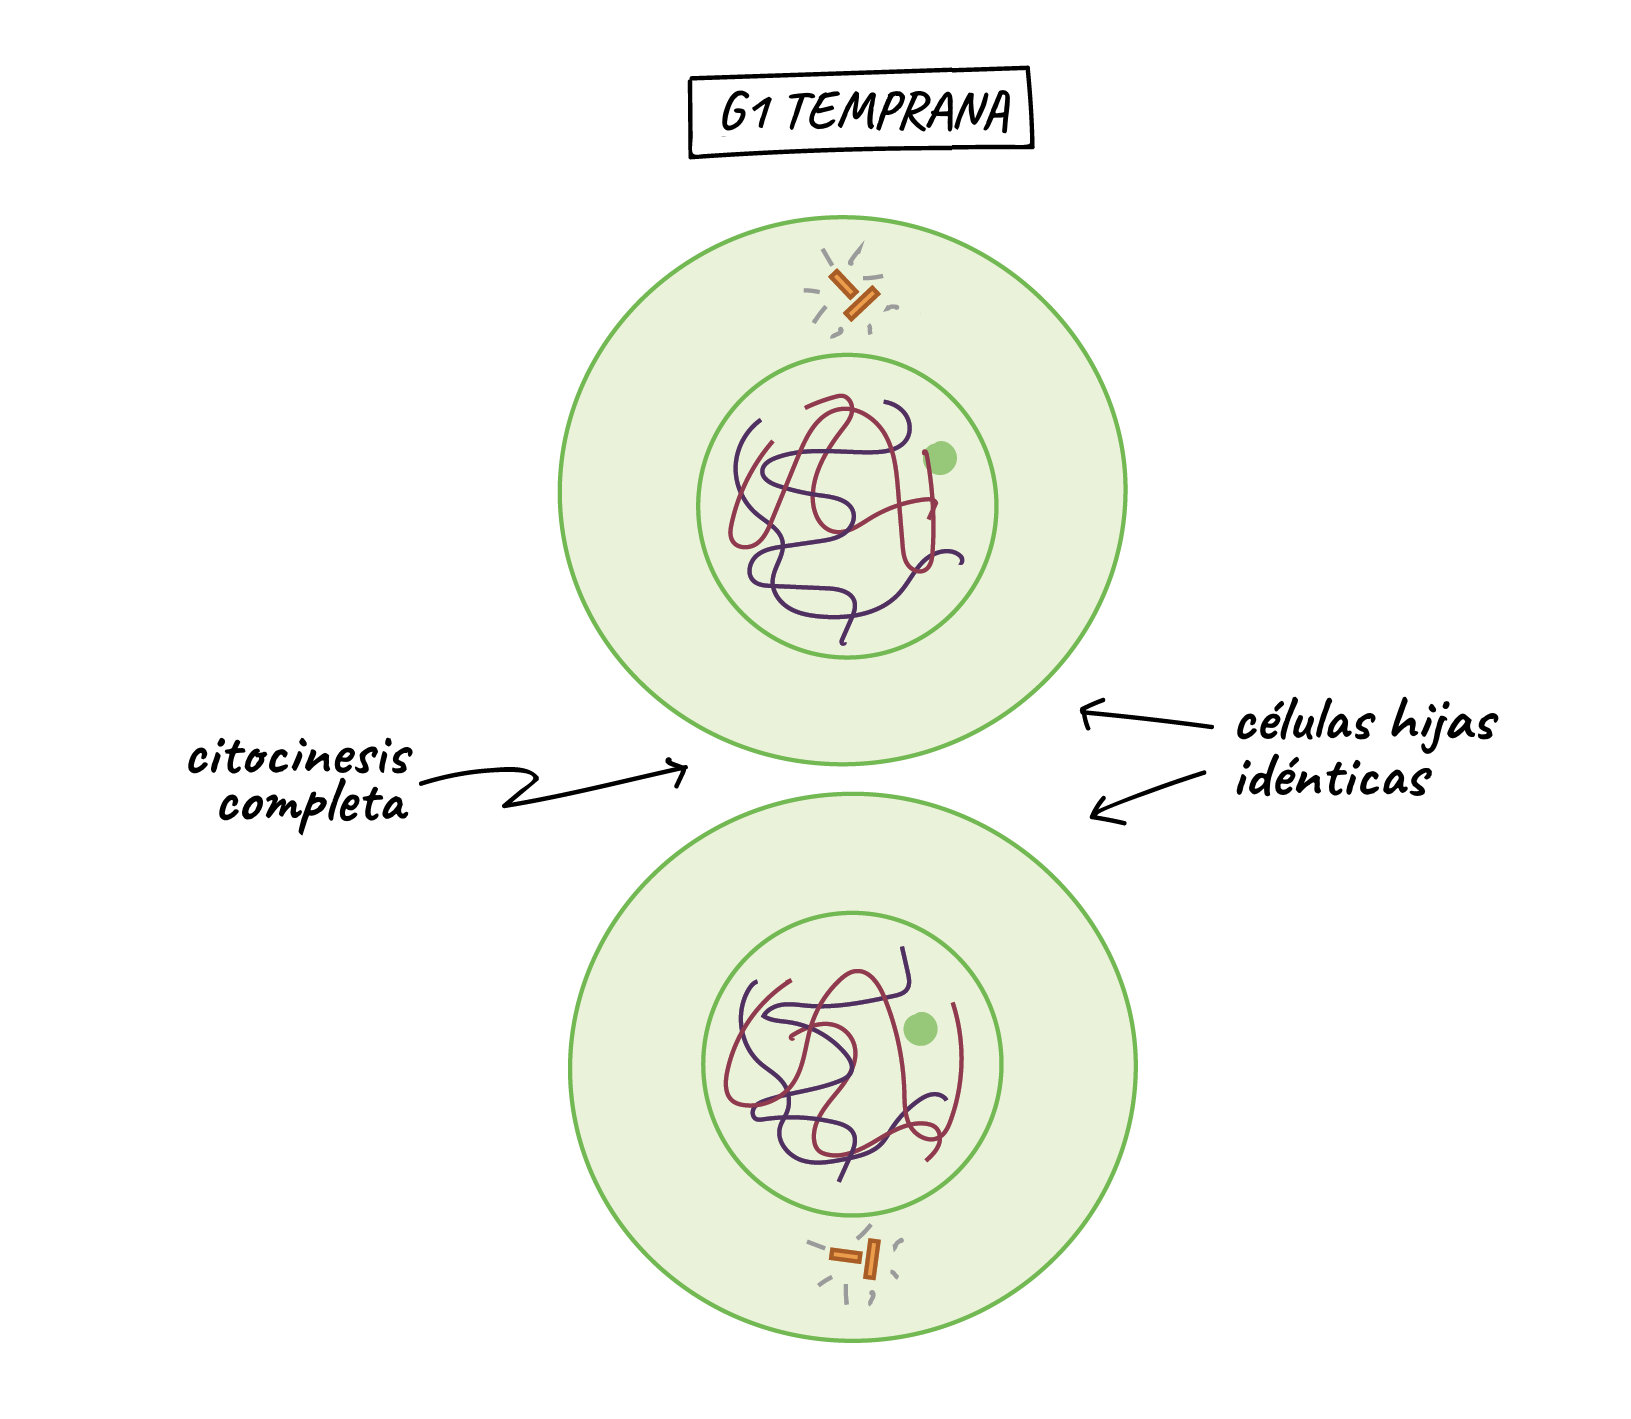 Phases of mitosis  The cell cycle  Cell division artculo